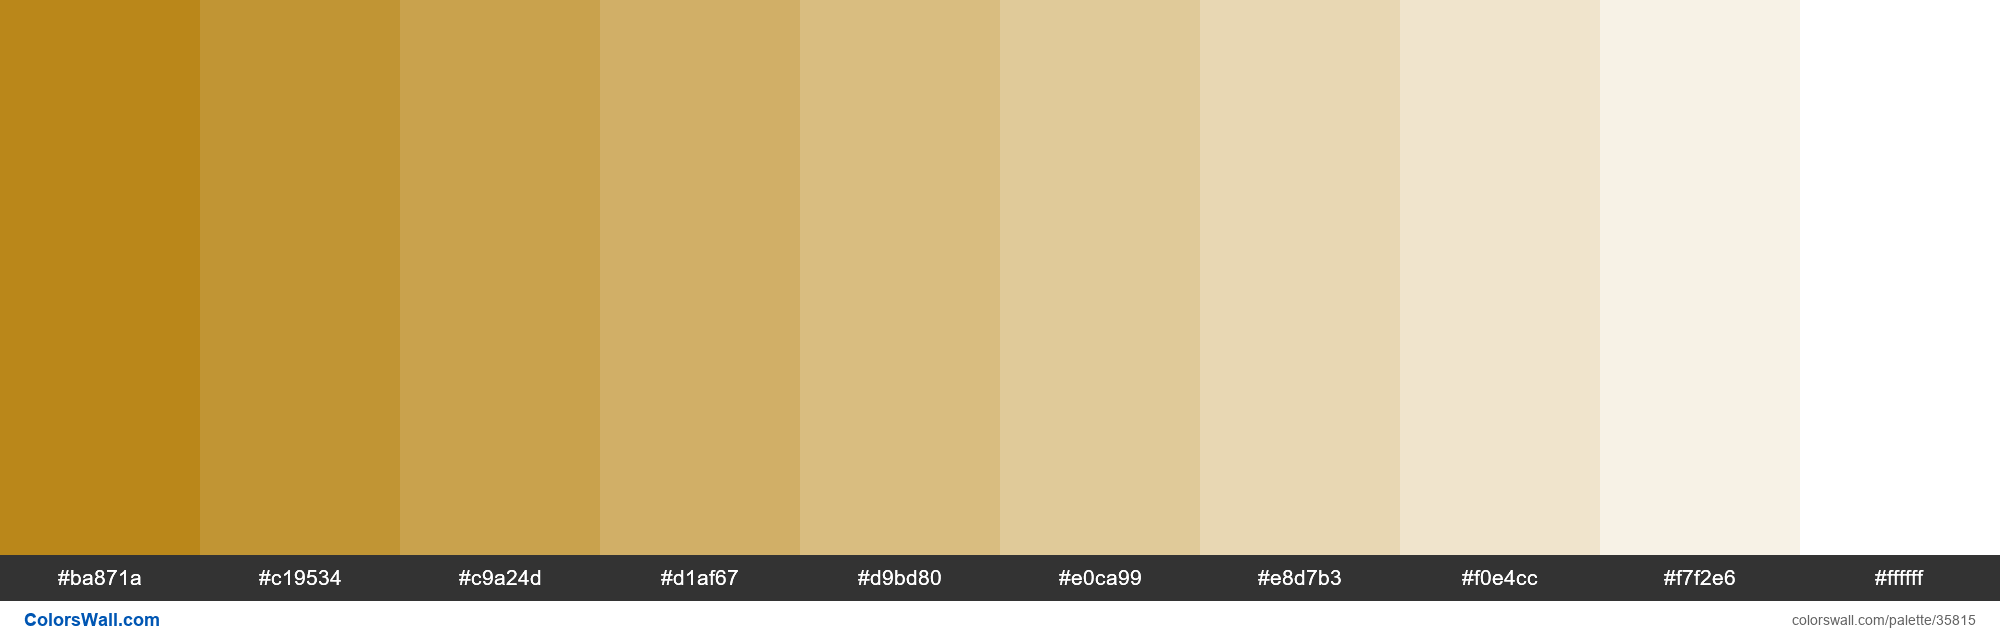 Tints XKCD Color golden brown #b27a01 hex - #35815